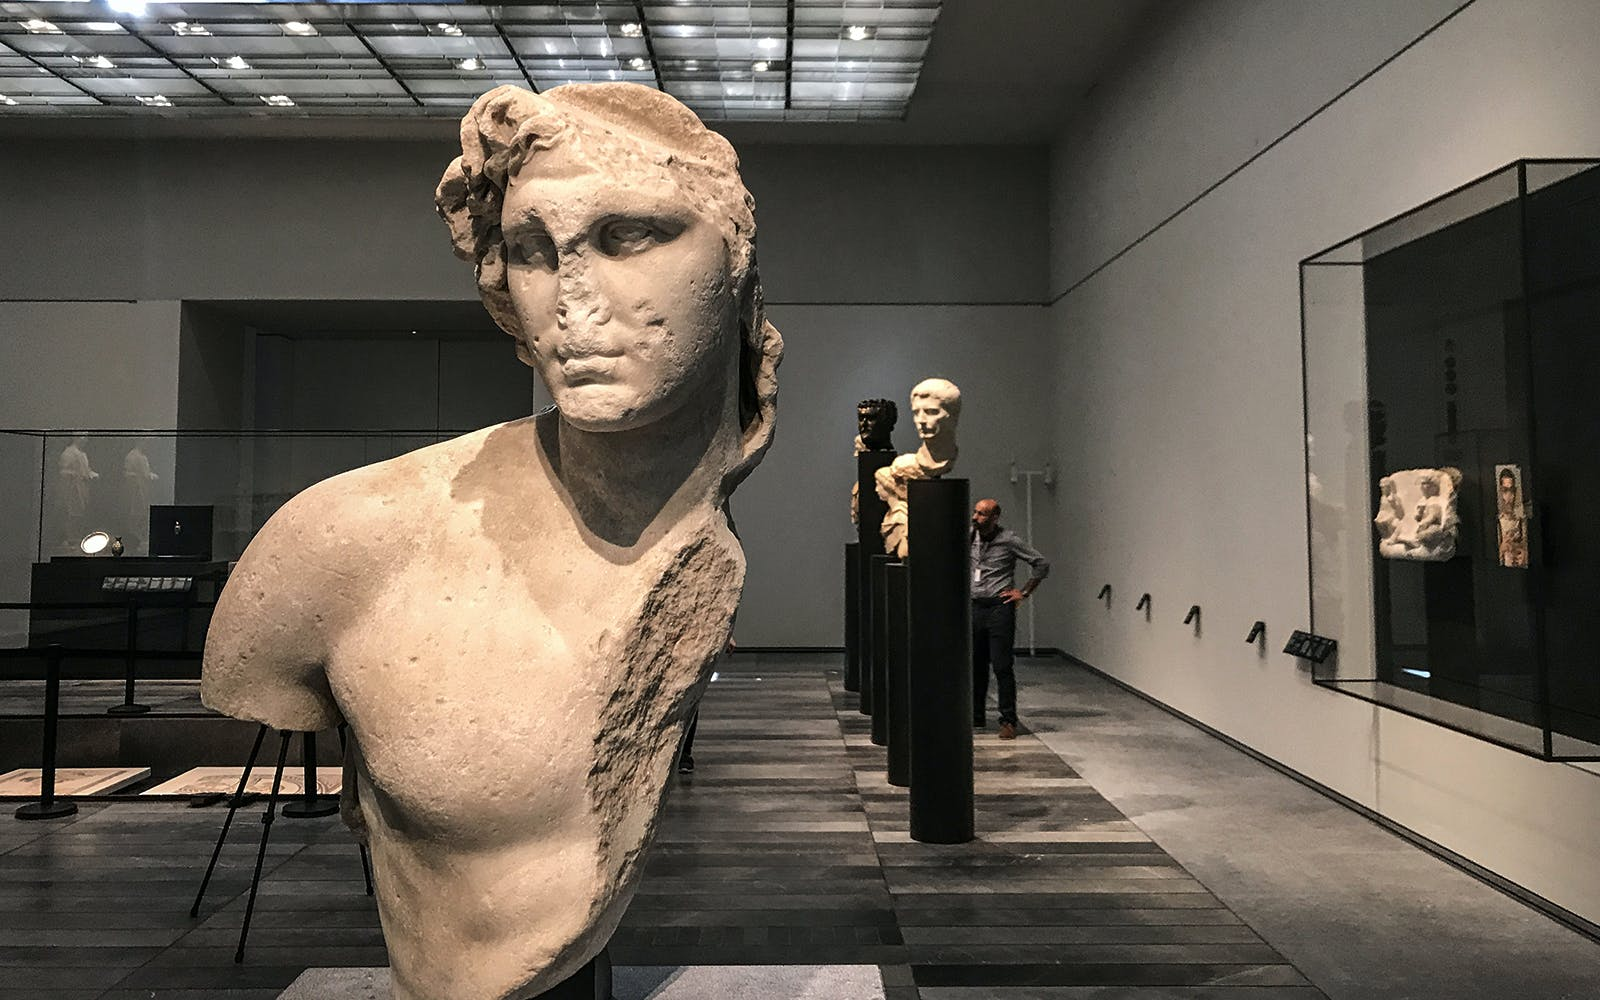 Louvre Abu Dhabi - Skip The Line Tickets + Multimedia Guide